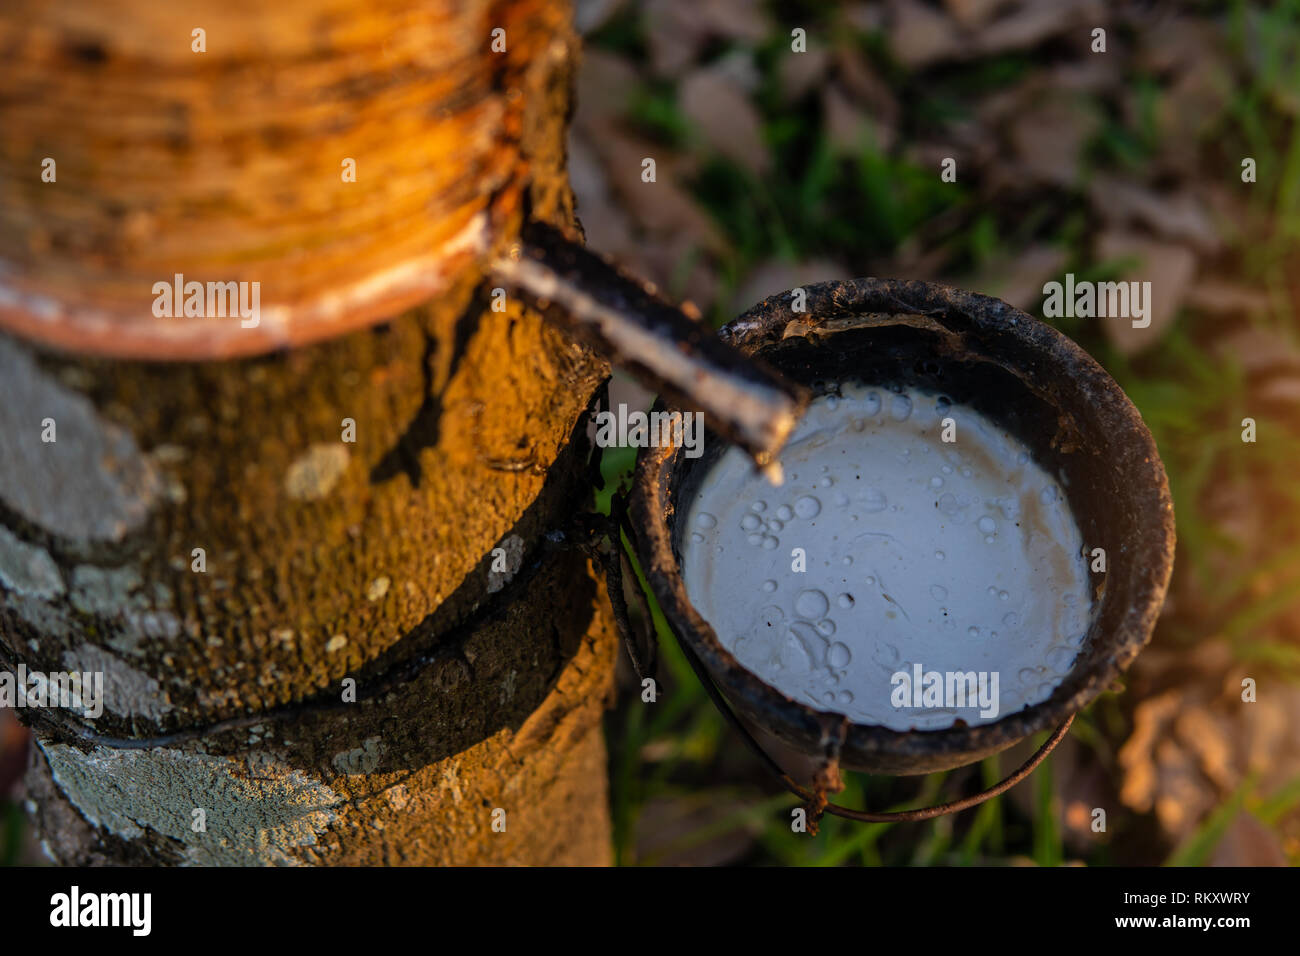 Gardener tapping latex rubber tree. Rubber Latex extracted from rubber tree. - Stock Image